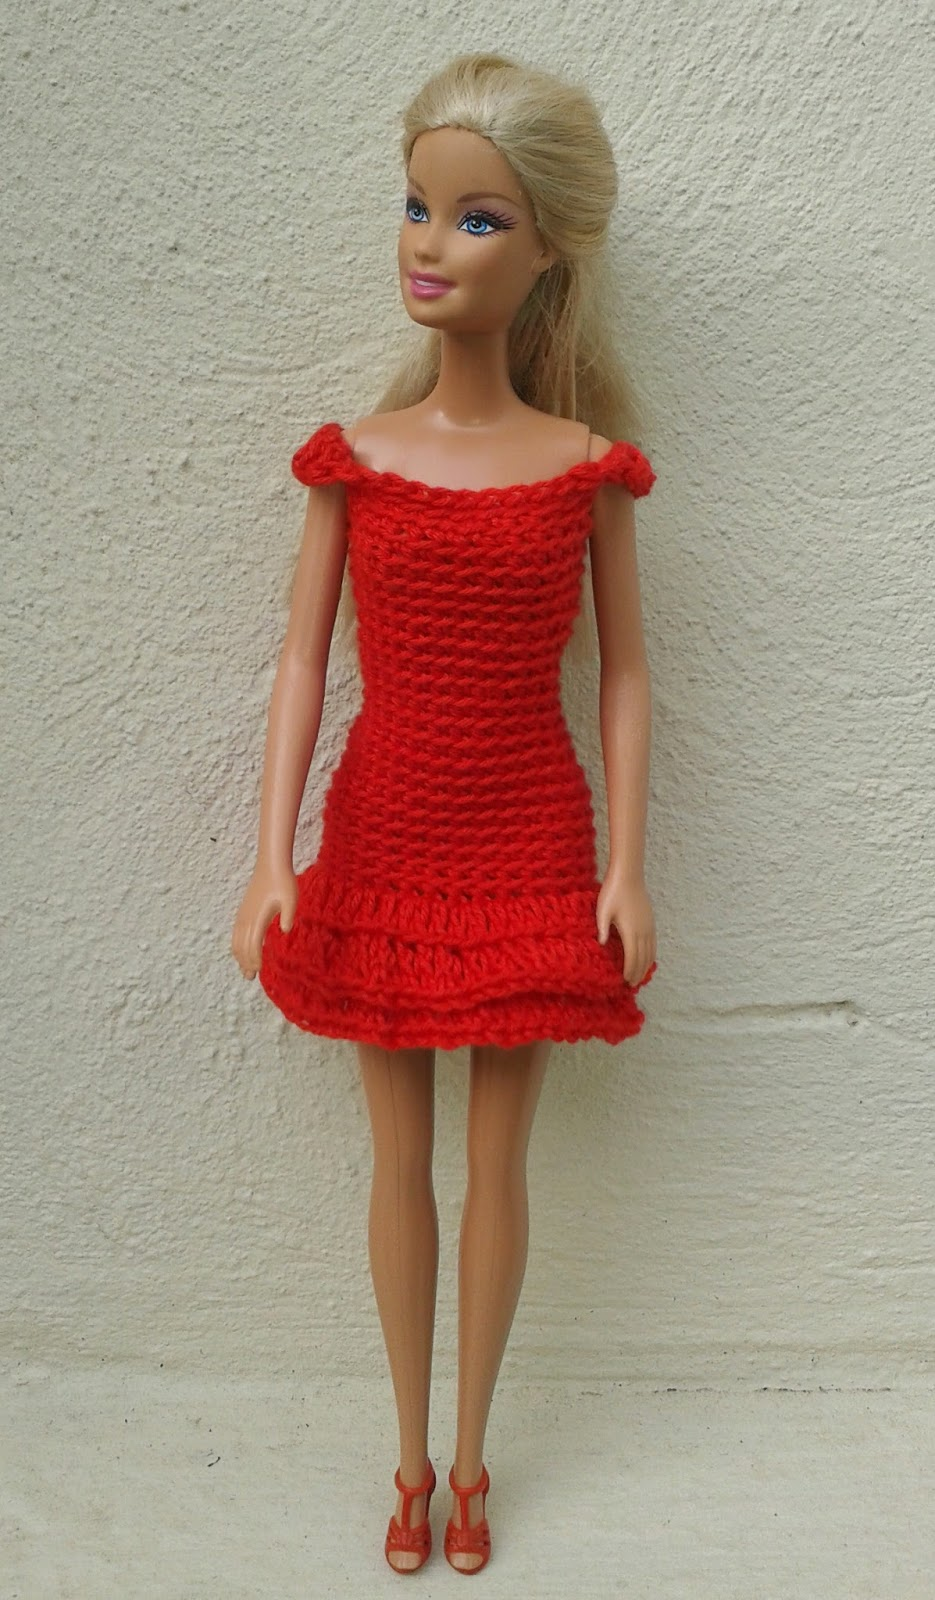 Linmary Knits: Barbie in red - crochet dresses